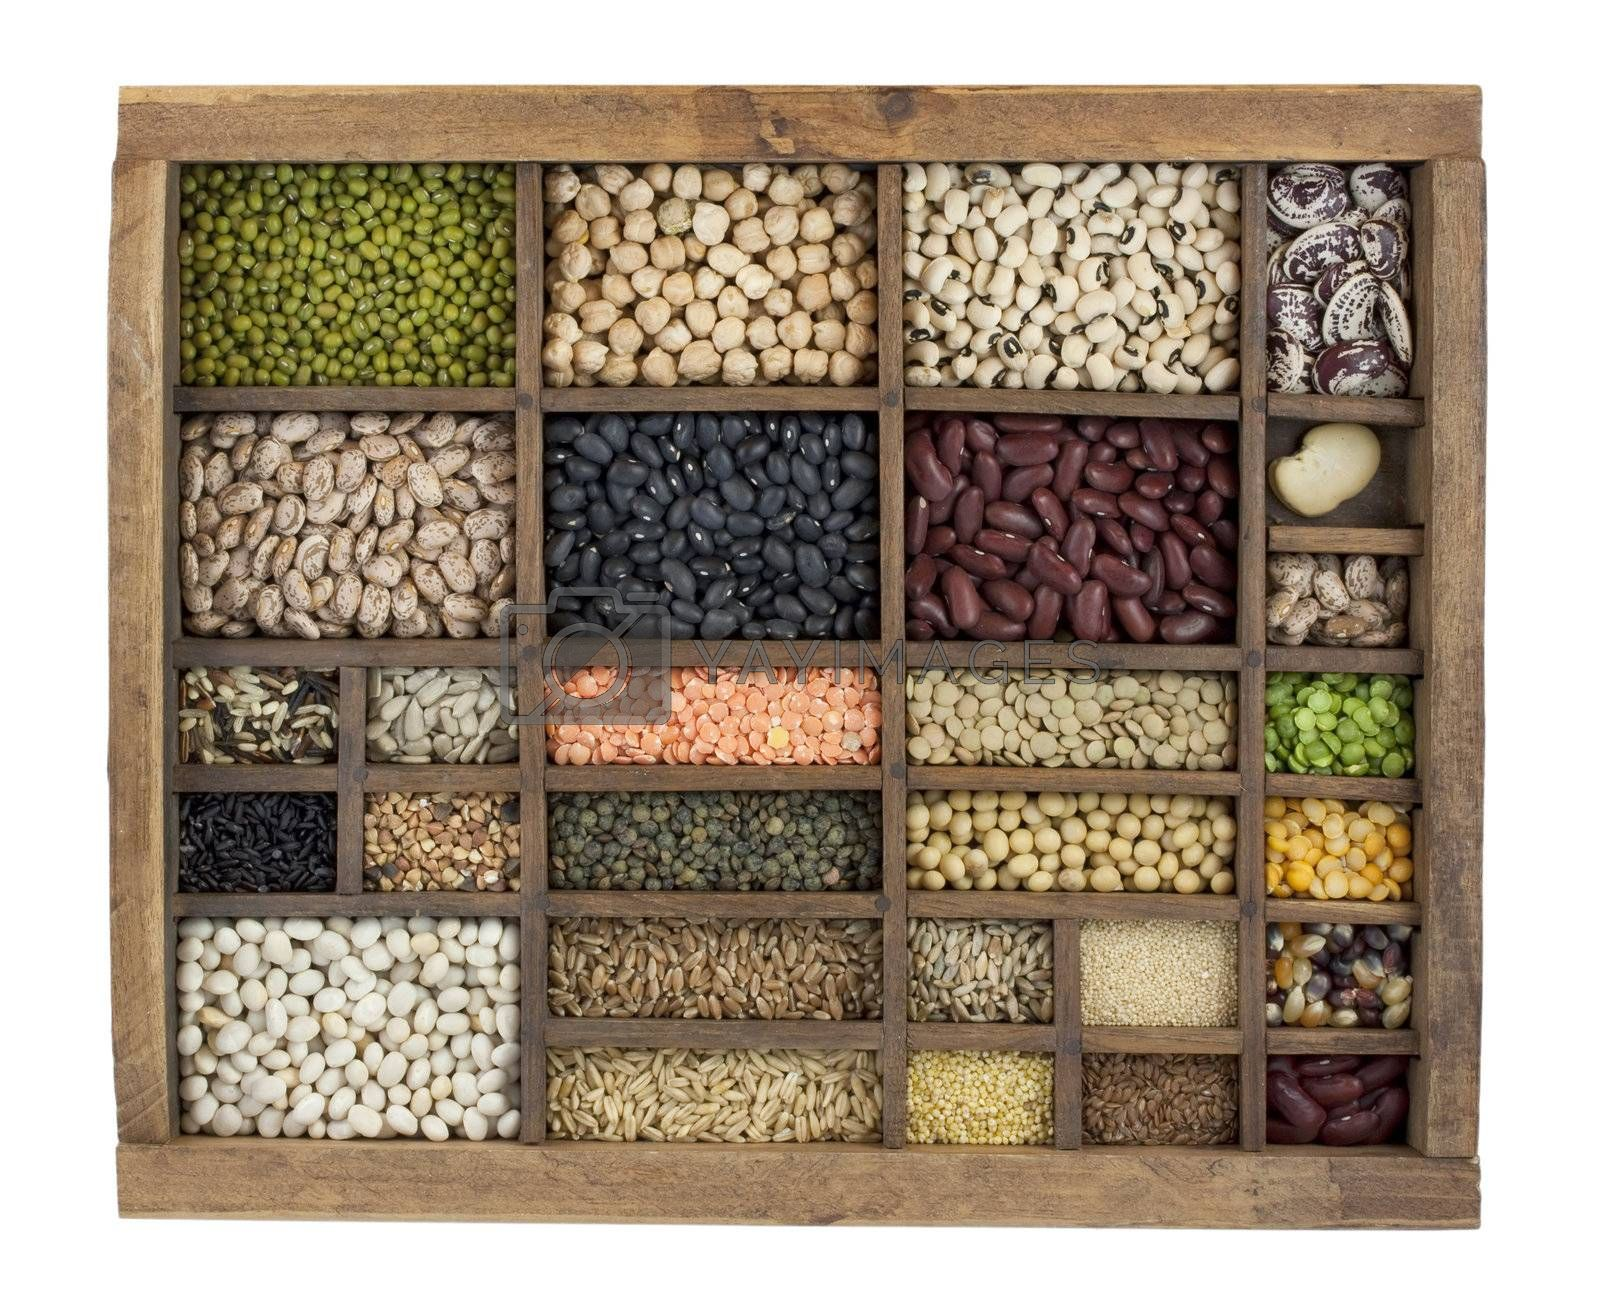 variety of beans, grains and seeds in vintage typesetter box by PixelsAway